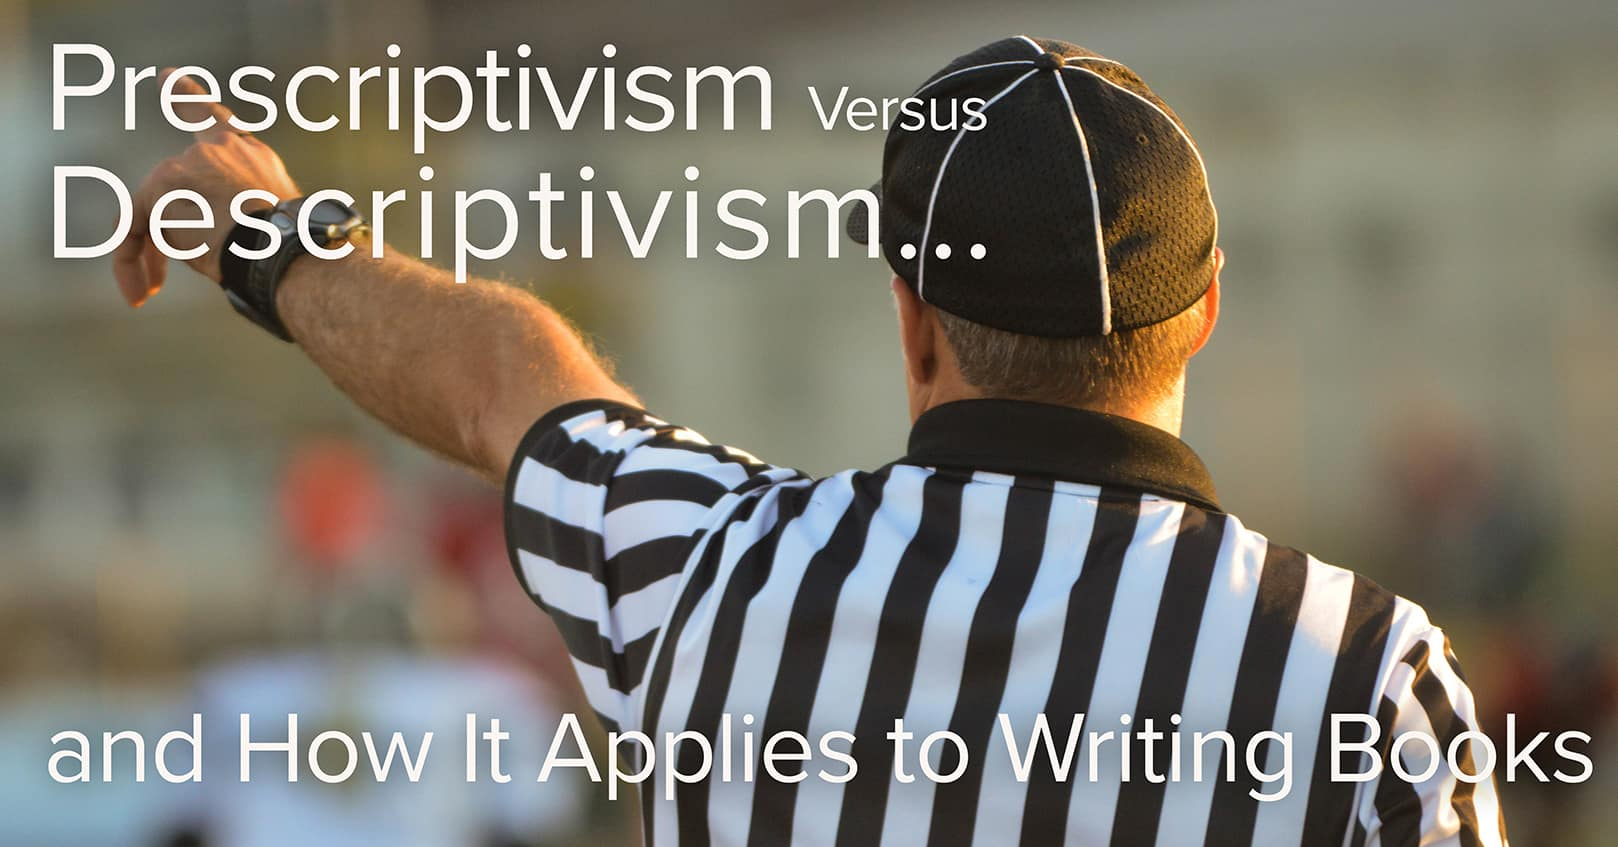 Prescriptivism Versus Descriptivism